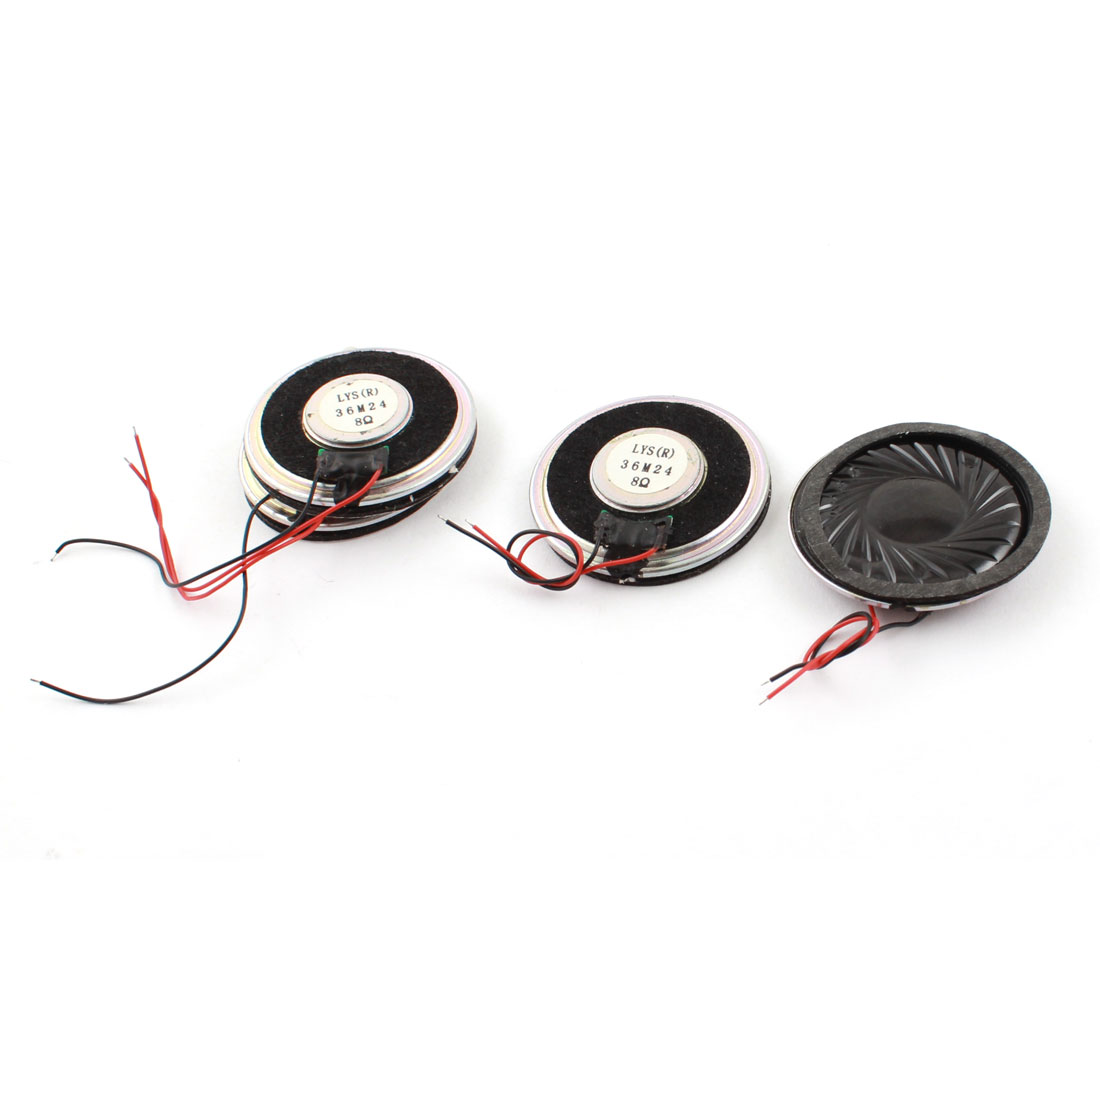 4 Pcs 1W 8 Ohm 36mm Dia Plastic Housing Round Cellphone Magnet Speaker Loudspeaker